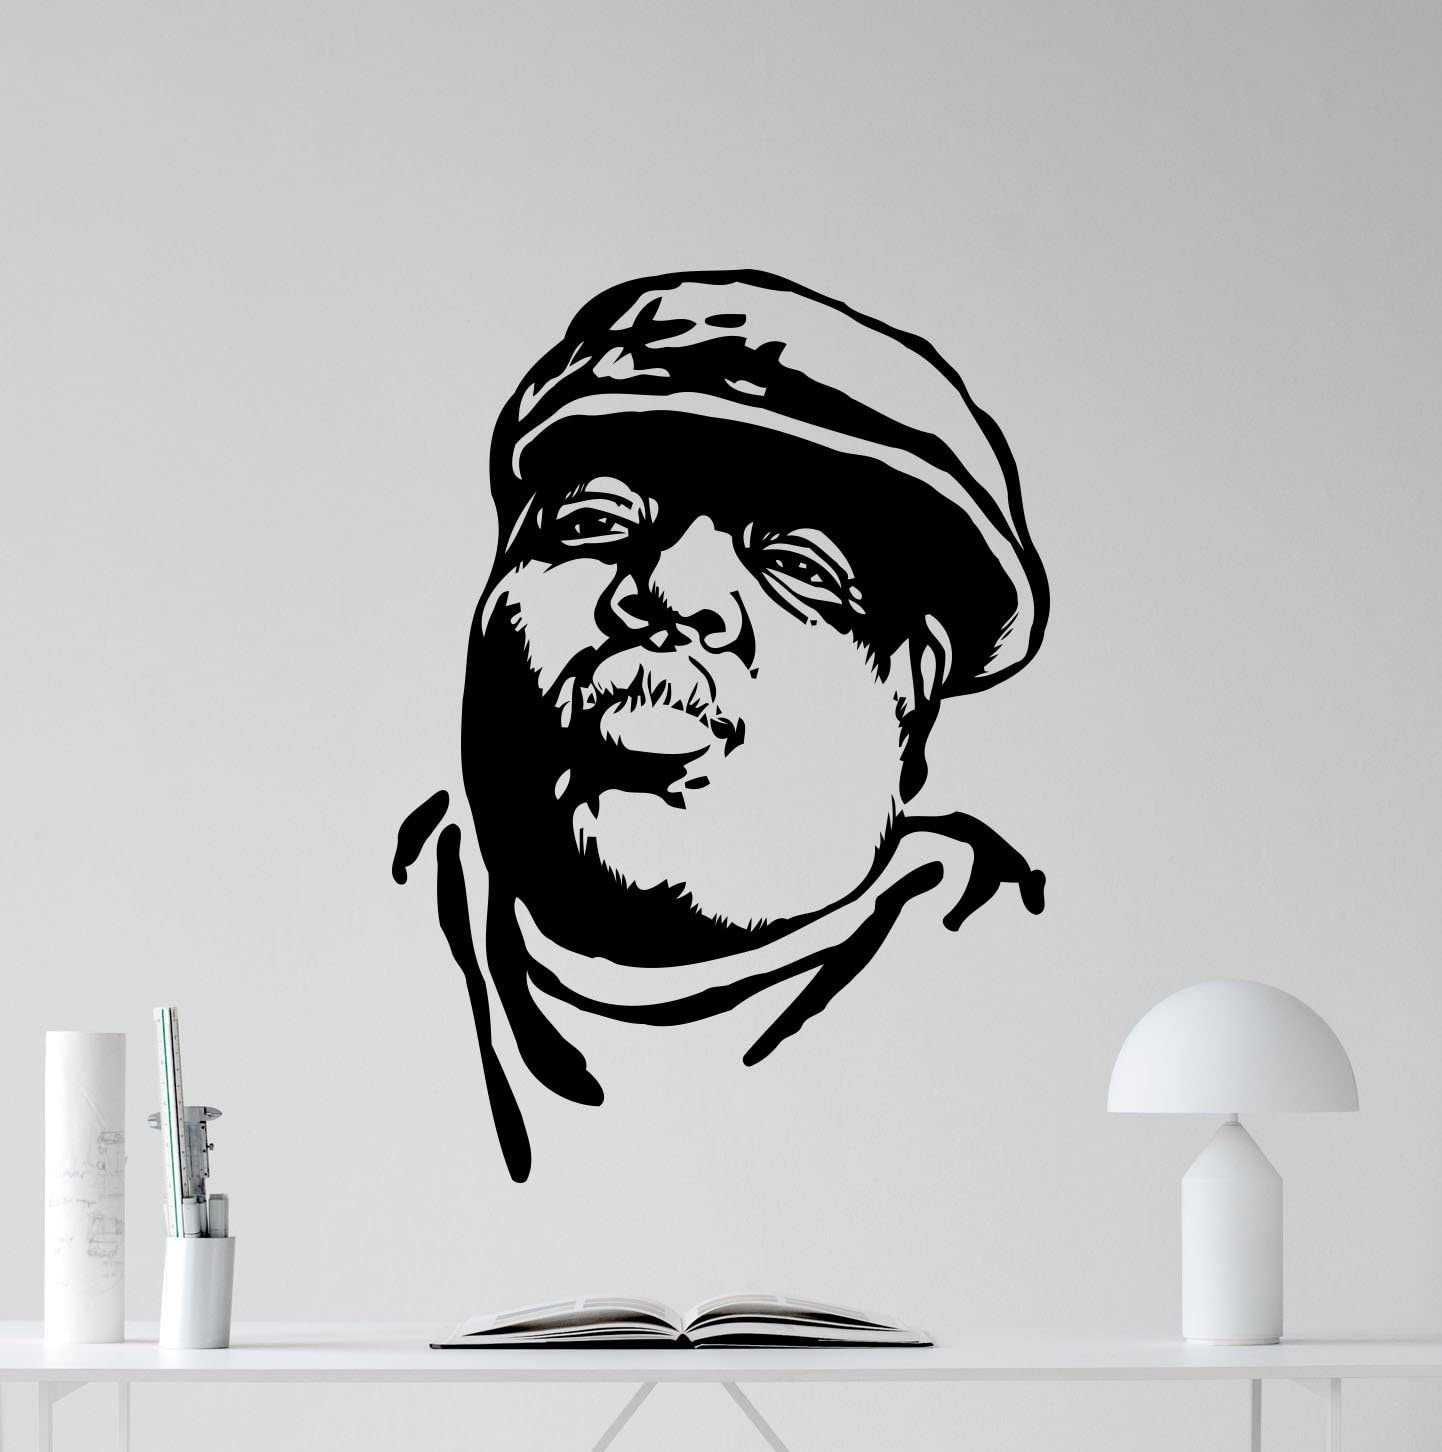 Wall Room Decor Art Vinyl Sticker Mural Decal Rap Hip Hop Star Big Large AS639